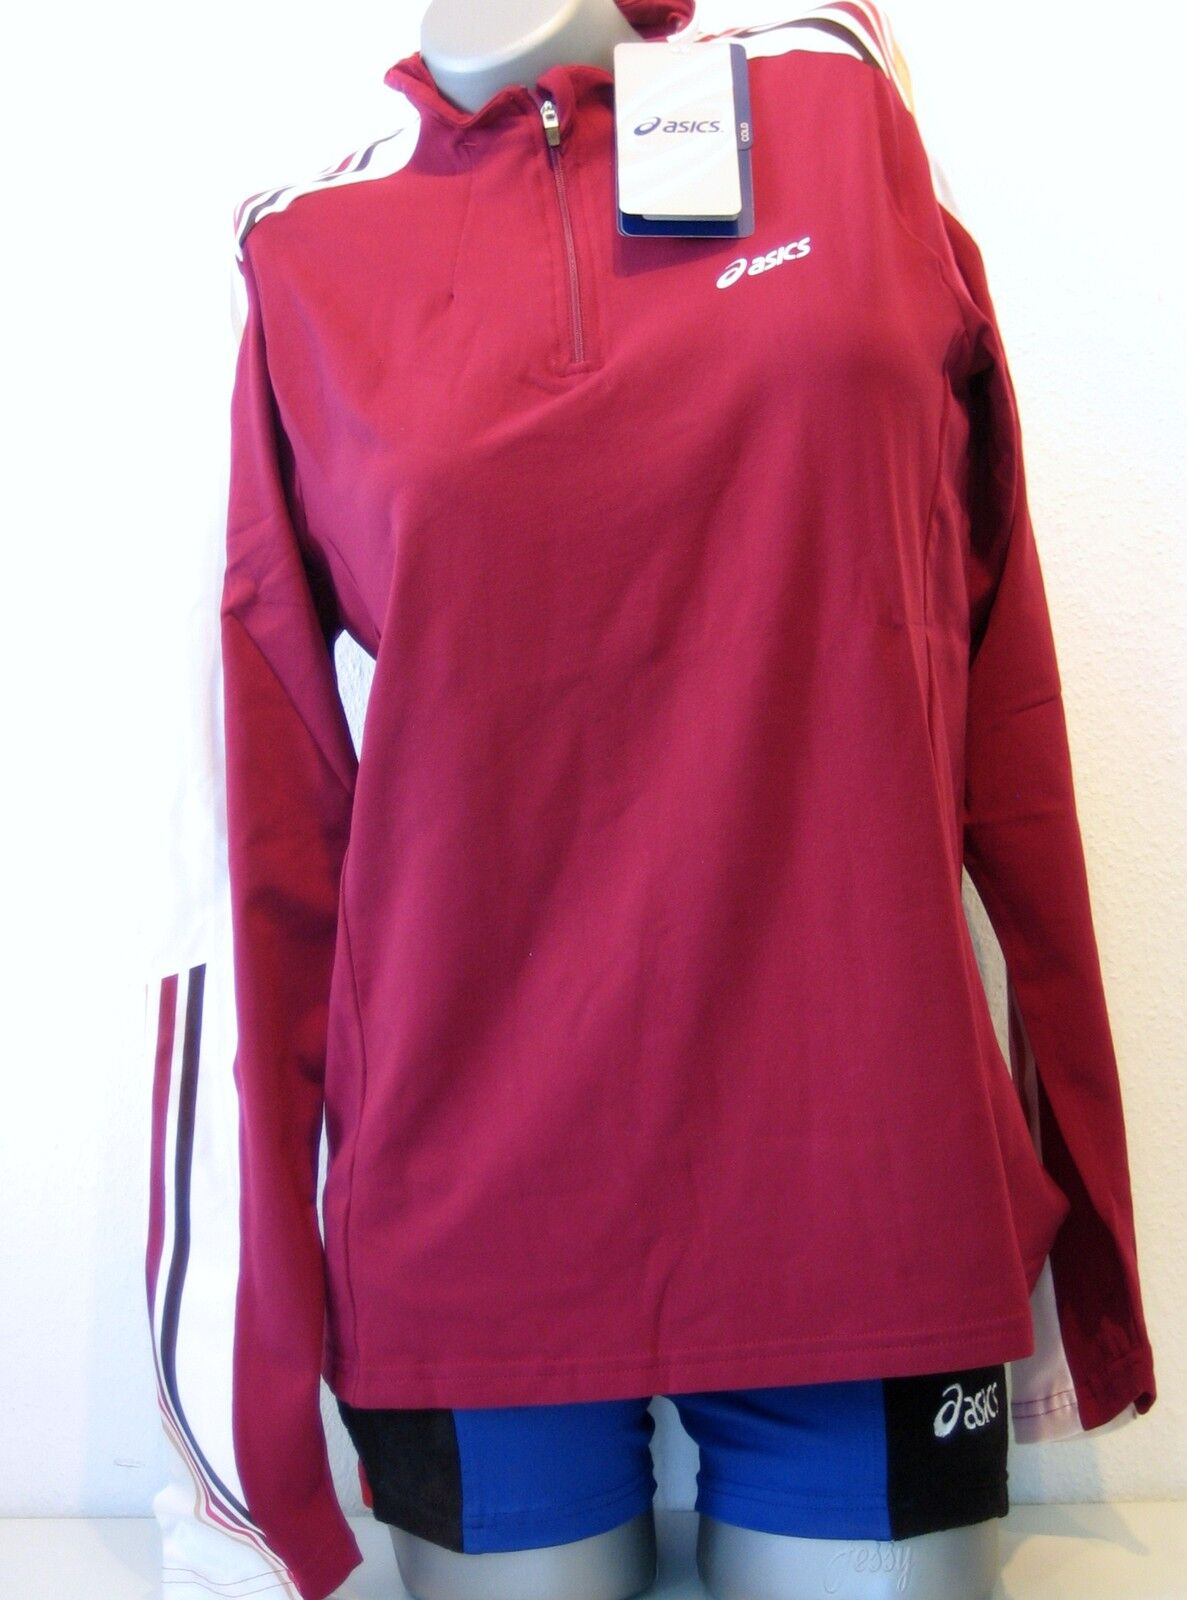 ASICS Women's Long Sleeve Shirt Size XS (32 34) Red NEW Agoldra 1 2 Zip Running